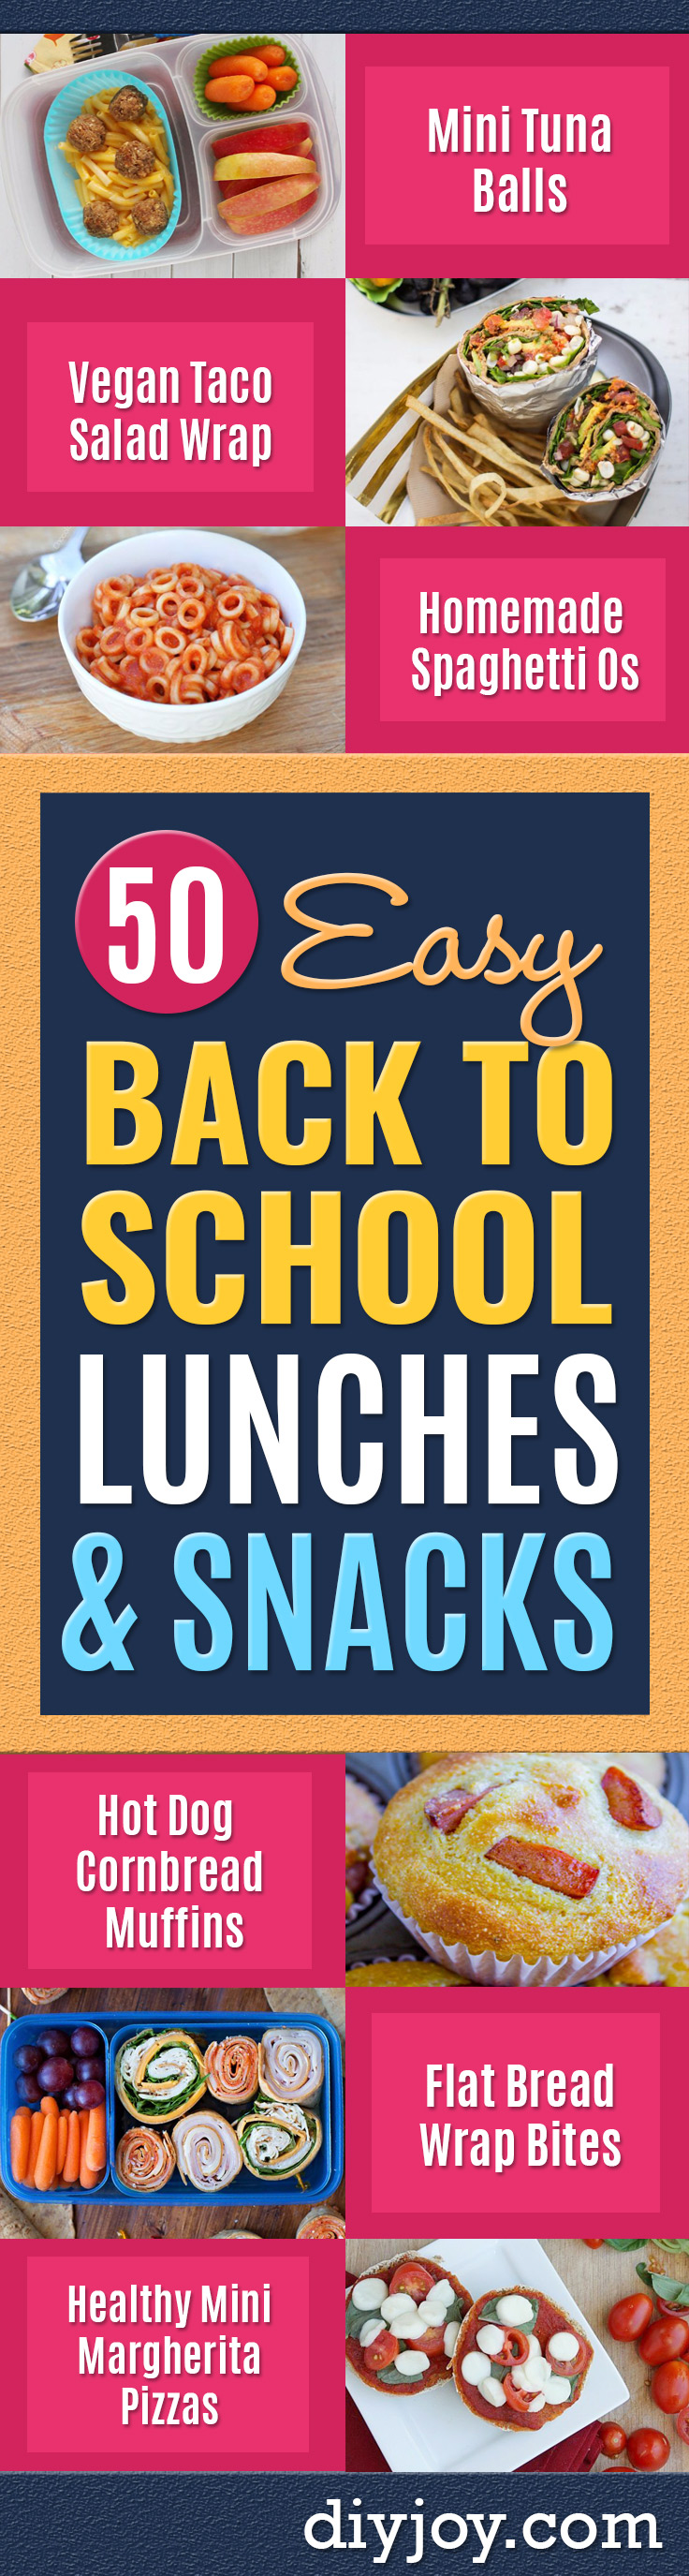 Back to School Lunch Ideas - Quick Snacks, Lunches and Homemade Lunchables - Bento Box Style Lunch for People in A Hurry - Fast Lunch Recipes to Pack Ahead - Healthy Ideas for Kids, Teens and Adults | Recipes and Ideas for Kids Lunch